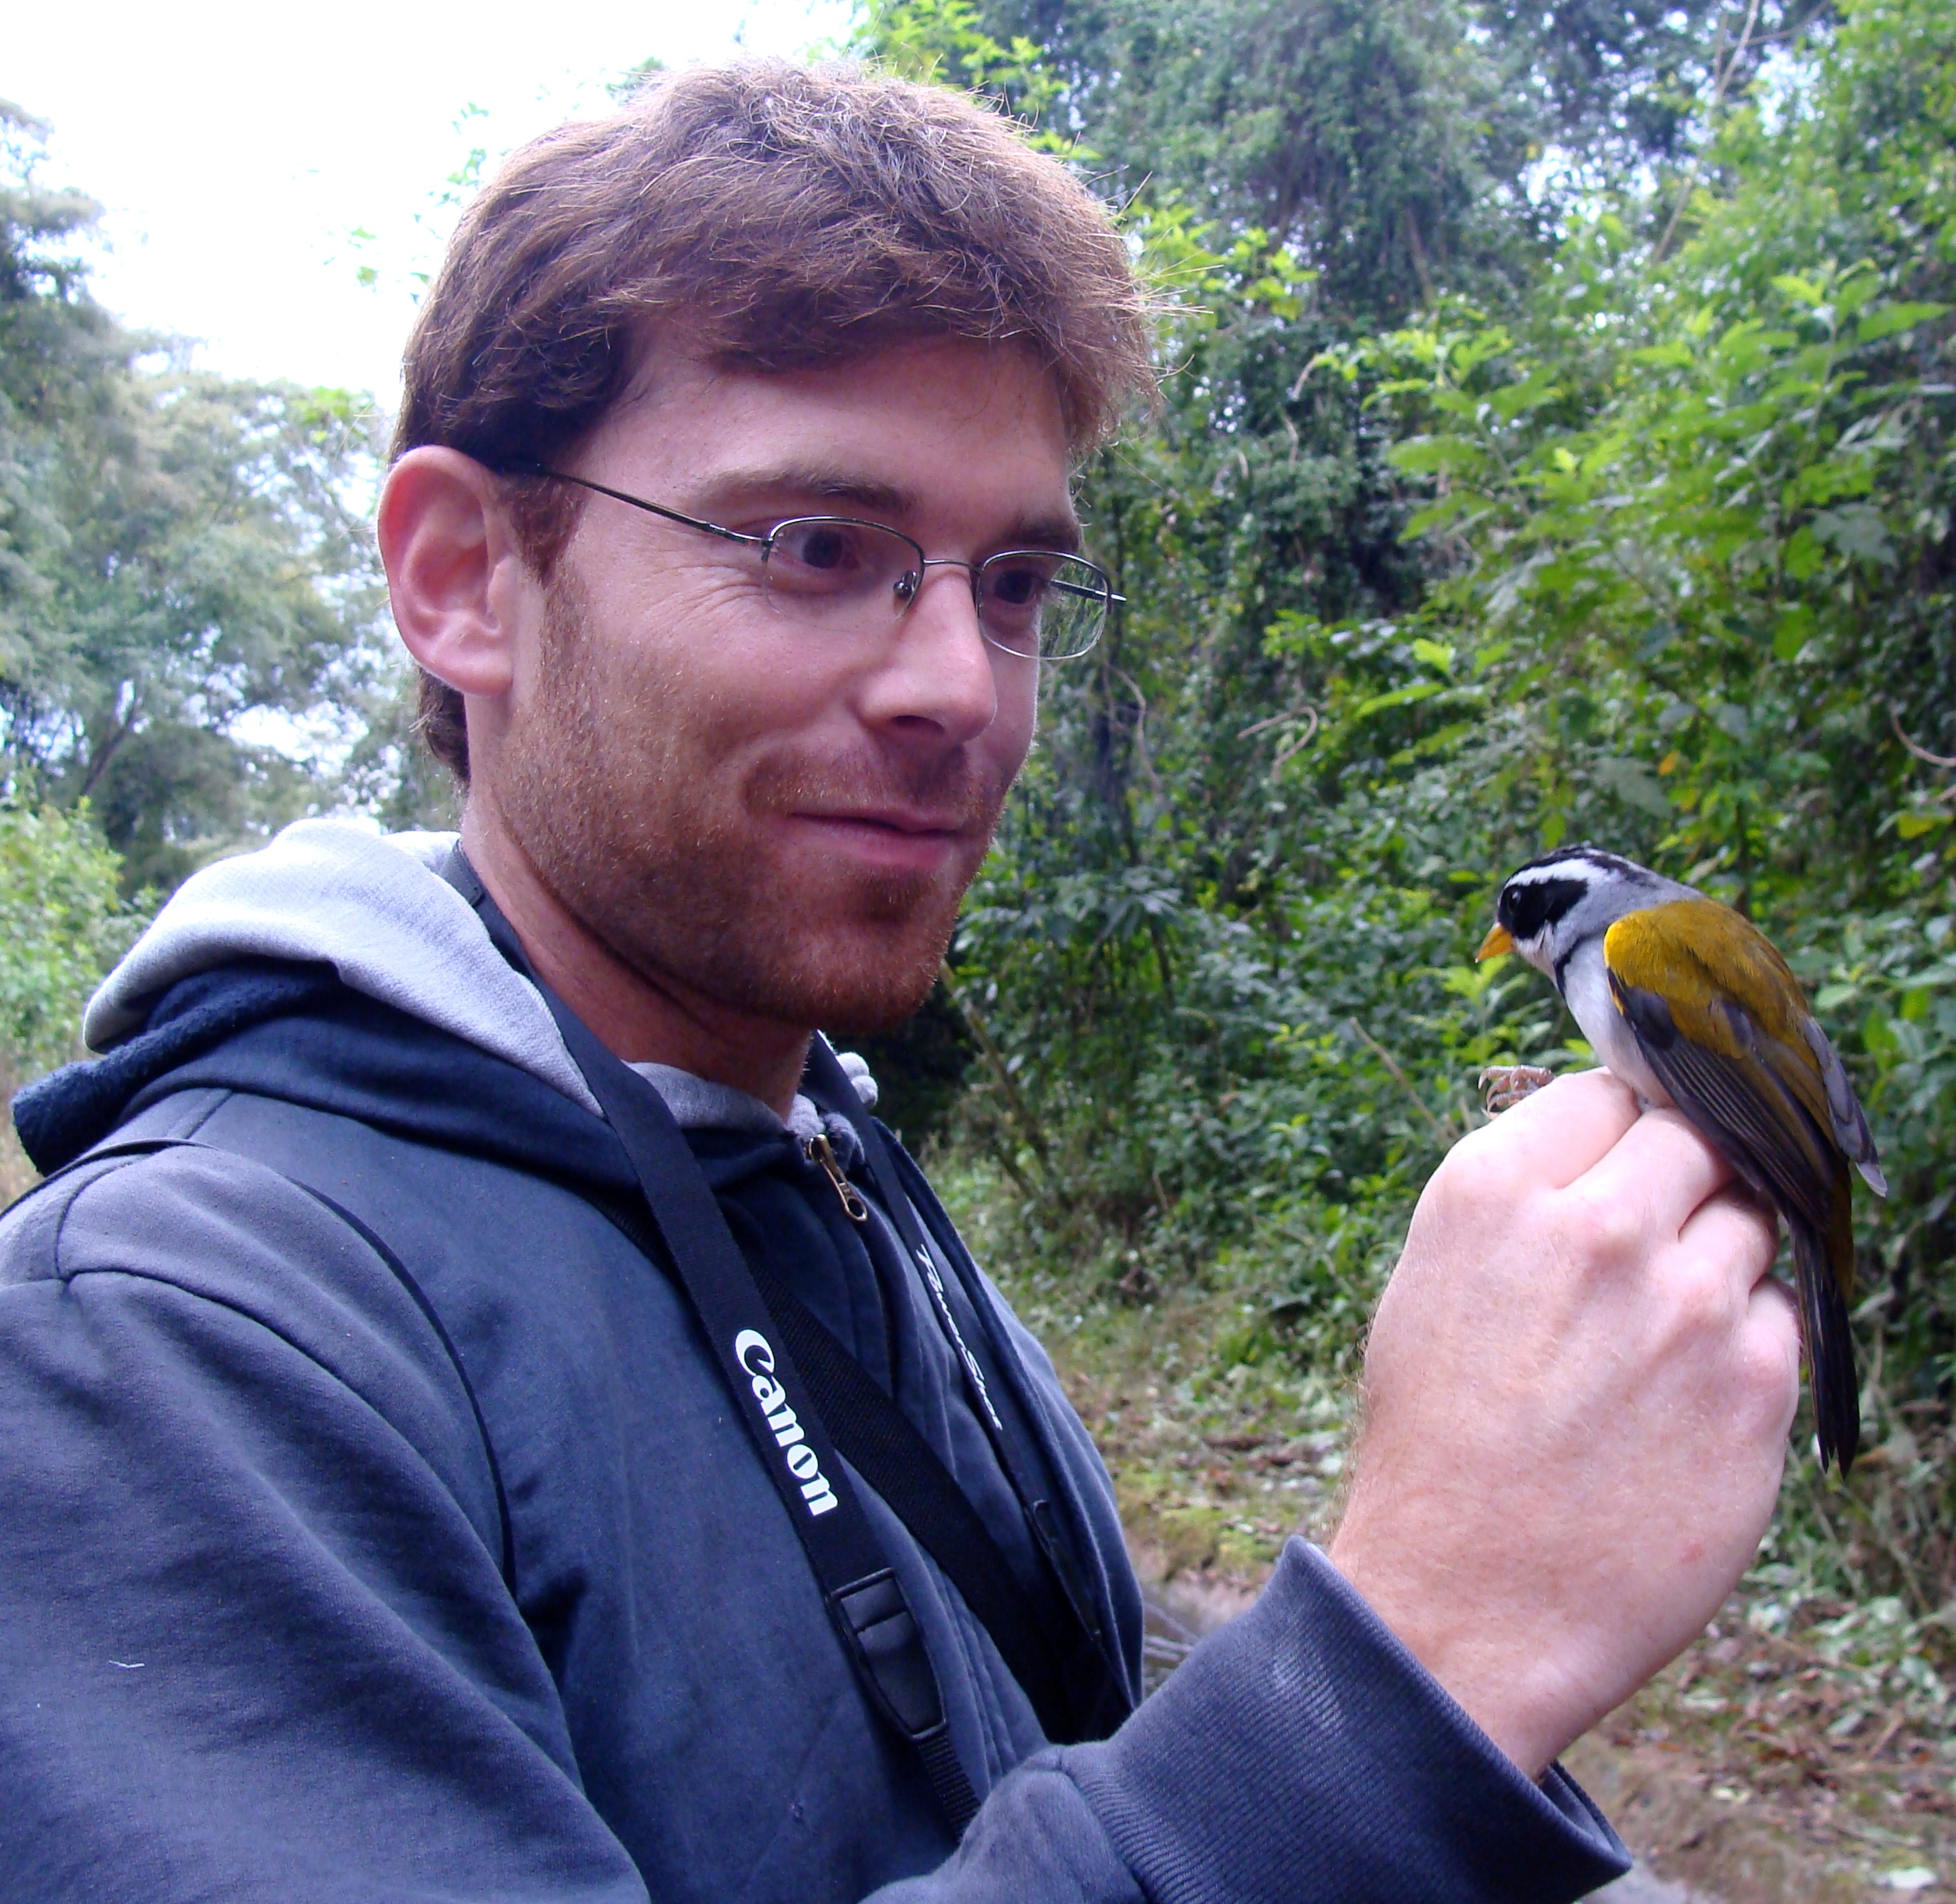 Native of Montevideo, Uruguay. Juan Andres holds degrees in Biology and Biochemistry from the Universidad de la Republica de Uruguay. His research interests include population ecology and conservation of mammals and birds. For his thesis research, Juan Andres is examining avian community ecology in native grasslands and timber plantations in northern Uruguay.